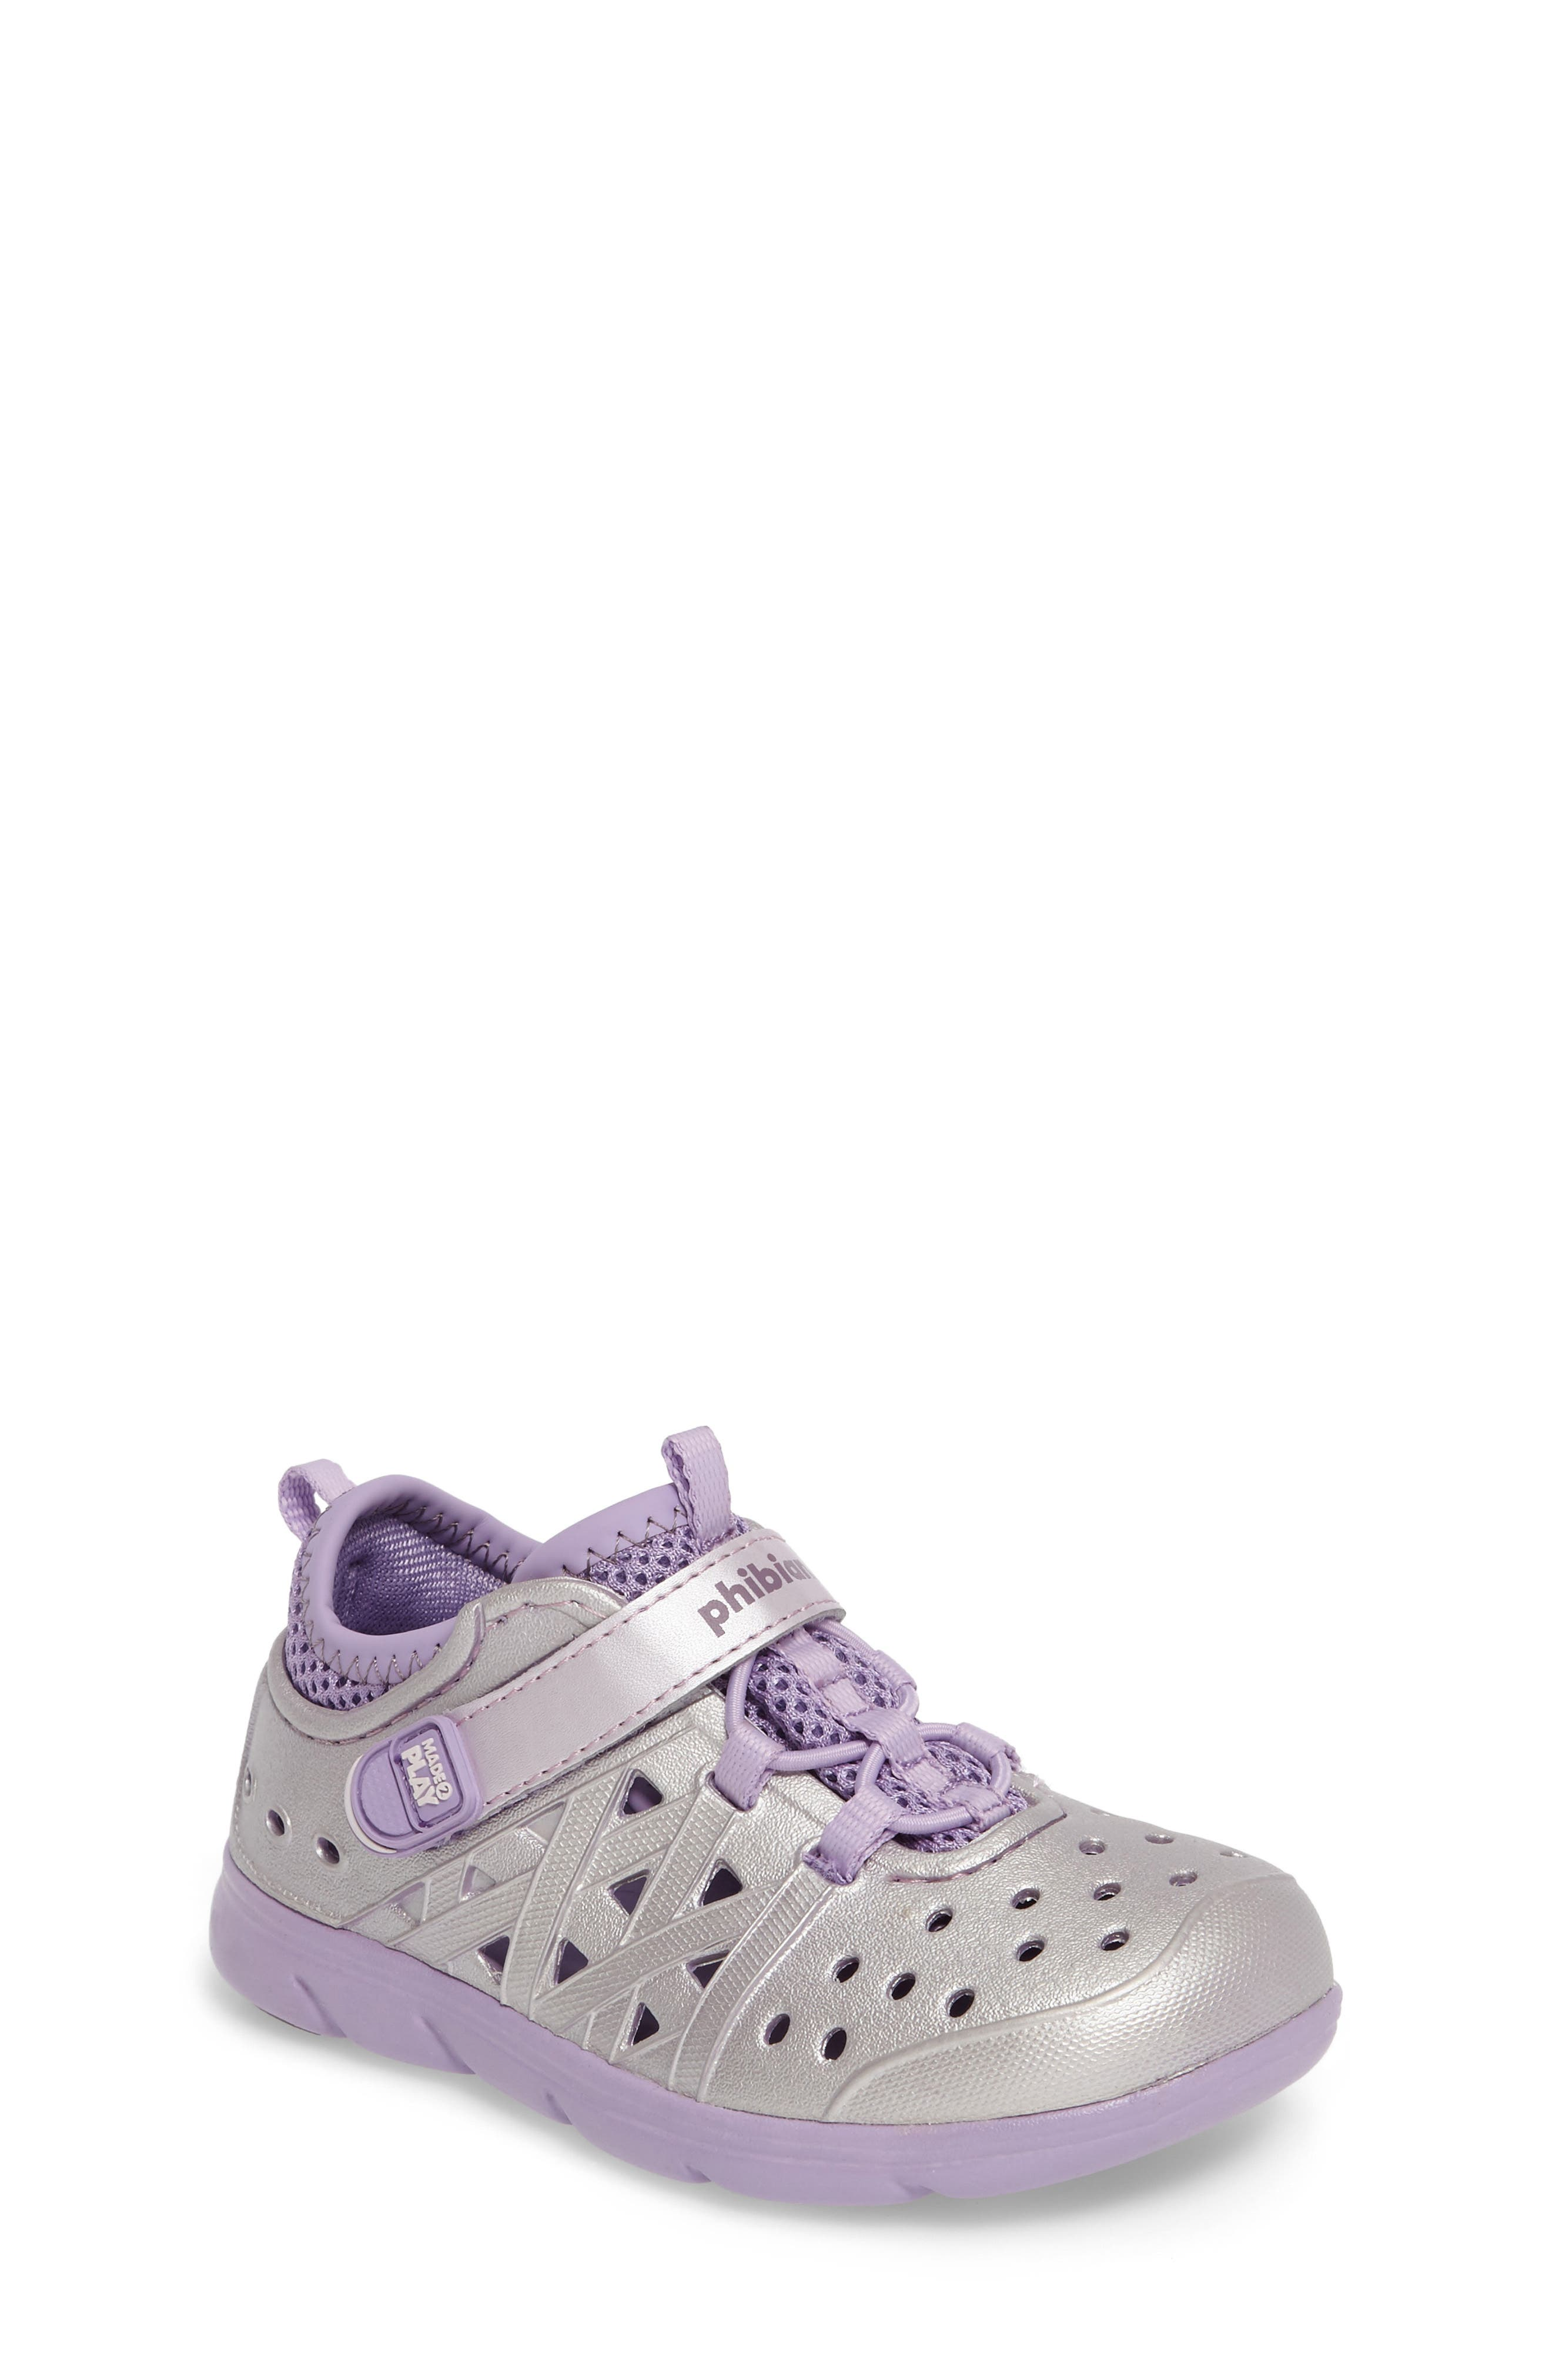 Made2Play<sup>®</sup> Phibian Sneaker,                         Main,                         color, Purple Metallic